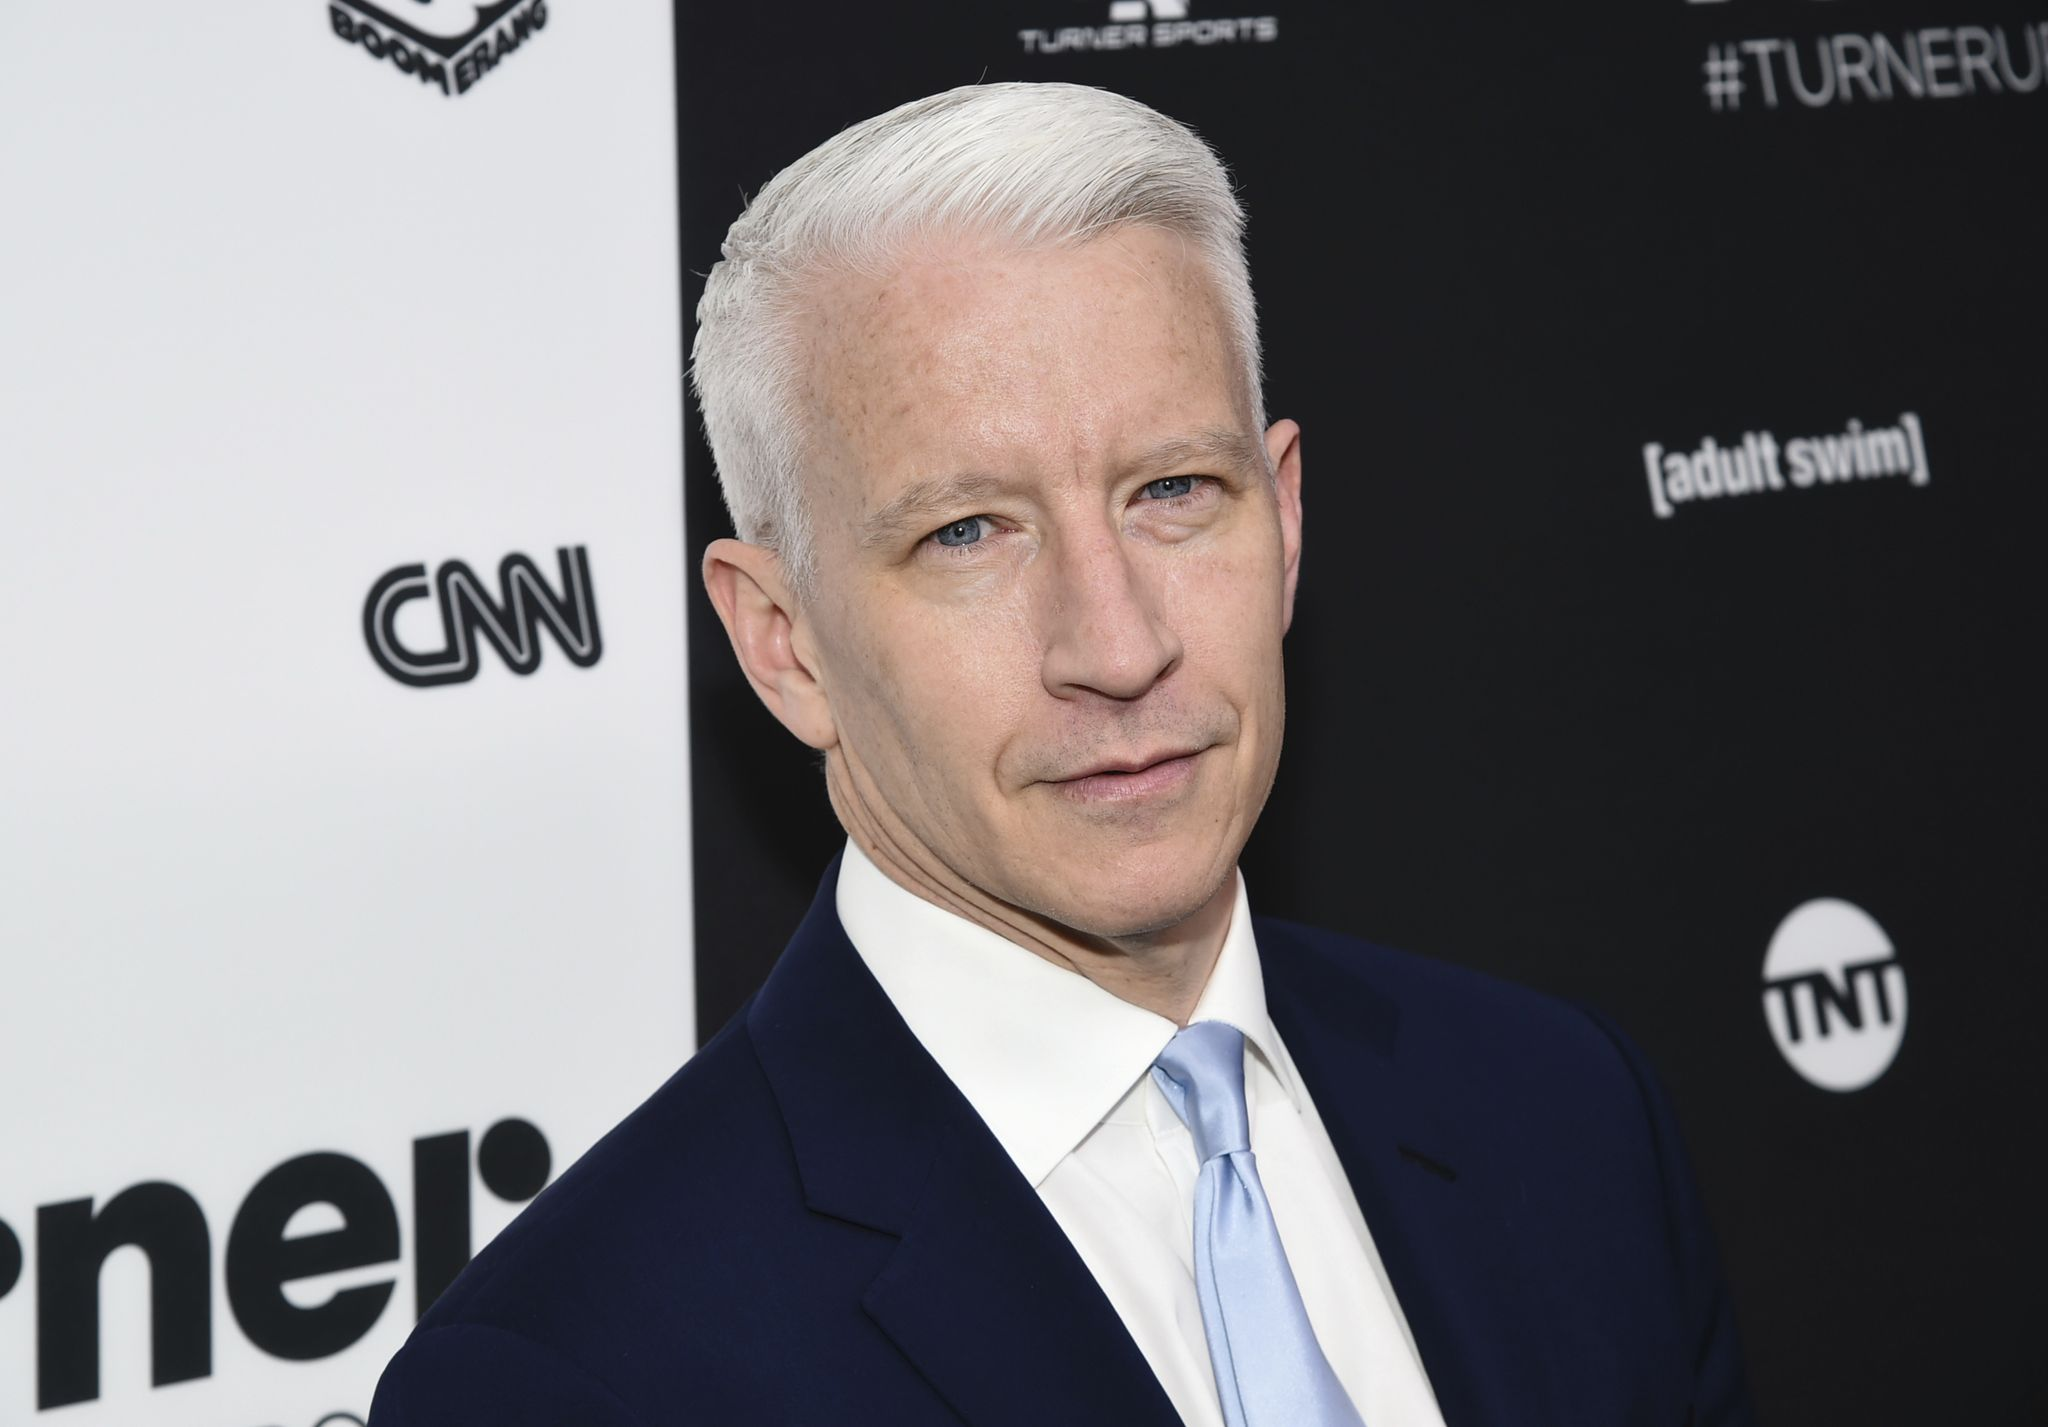 Anderson Cooper of CNN to receive 2018 Walter Cronkite Award for Excellence in Journalism